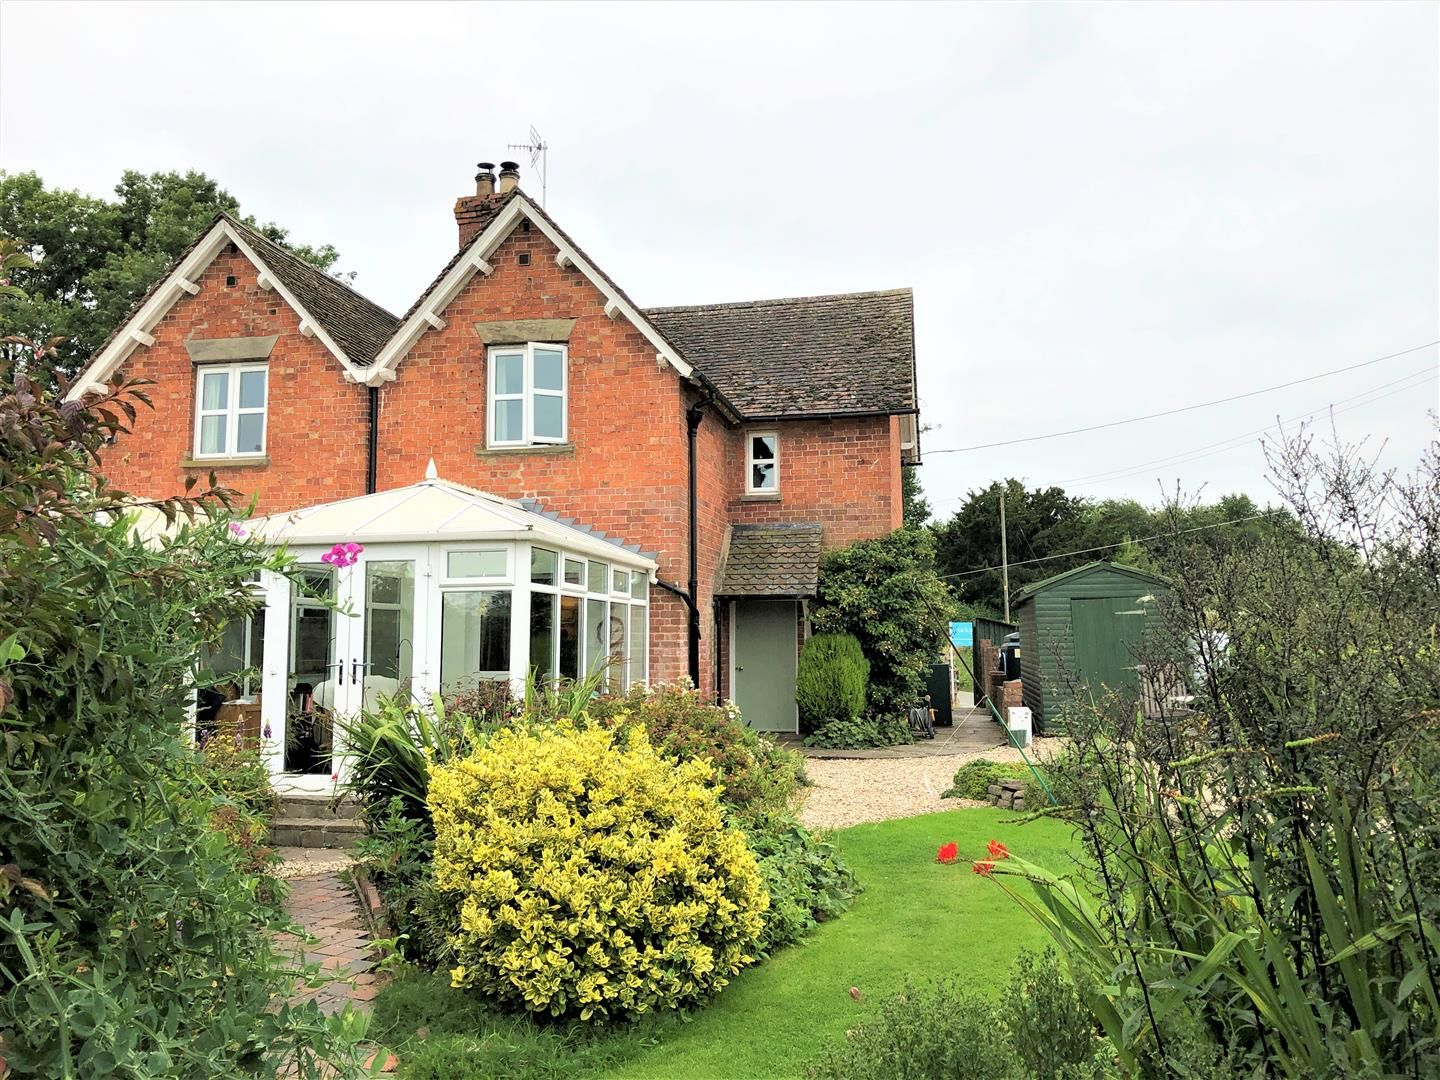 3 bed semi-detached for sale in Lyonshall, HR5